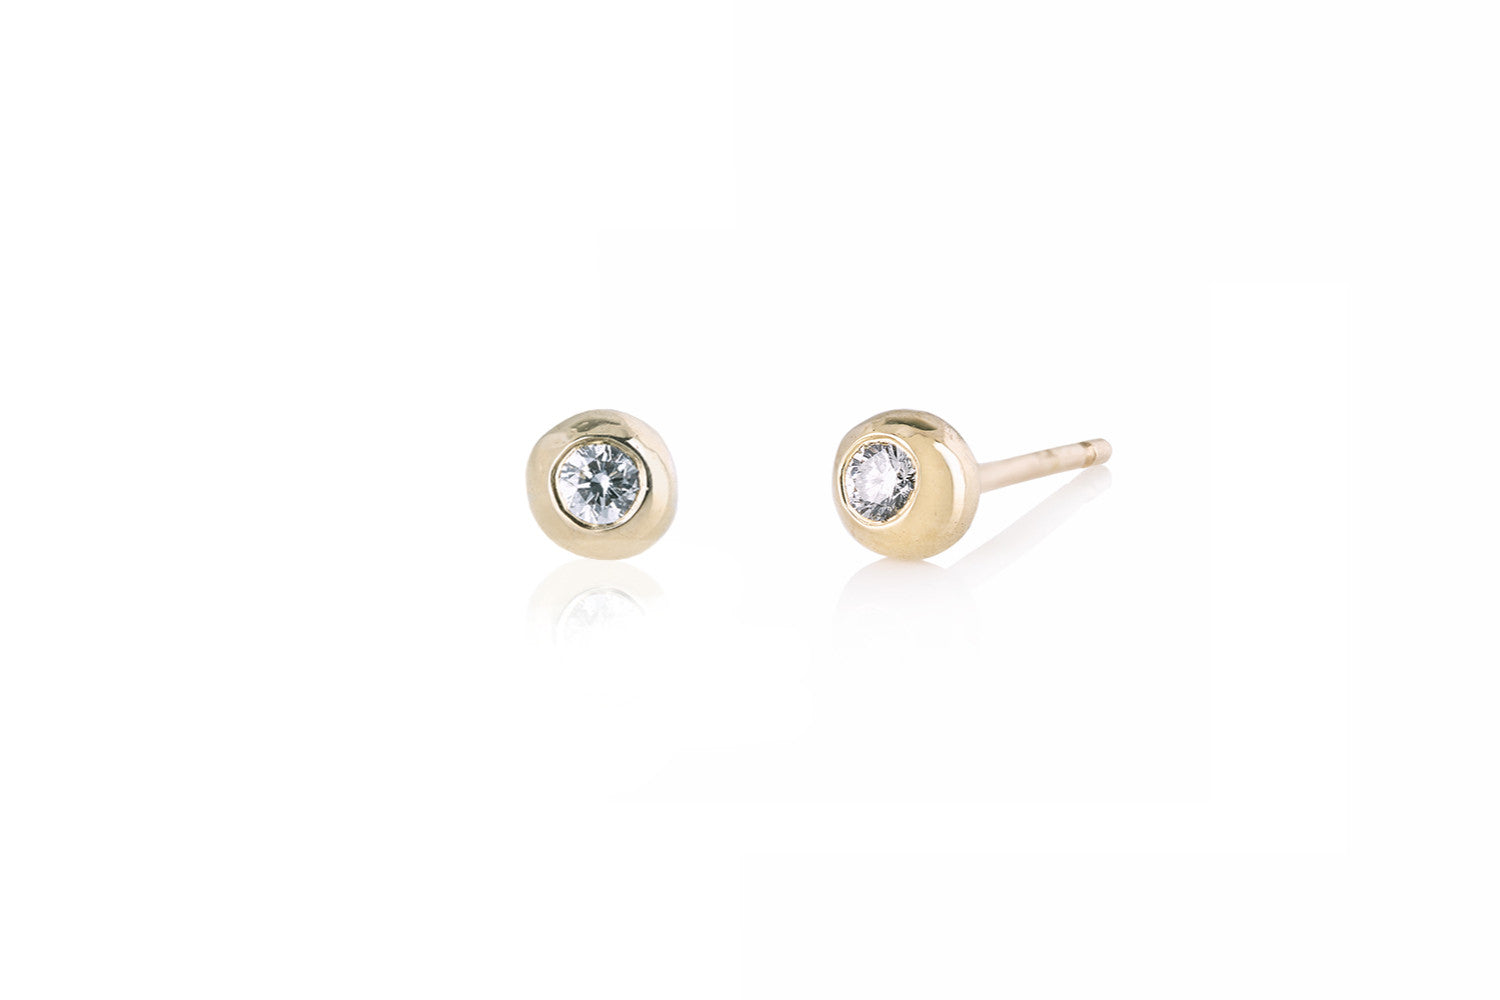 rose cut products dimond danabronfman earrings black diamond earring natural ak studs pyramidal medium grey stud